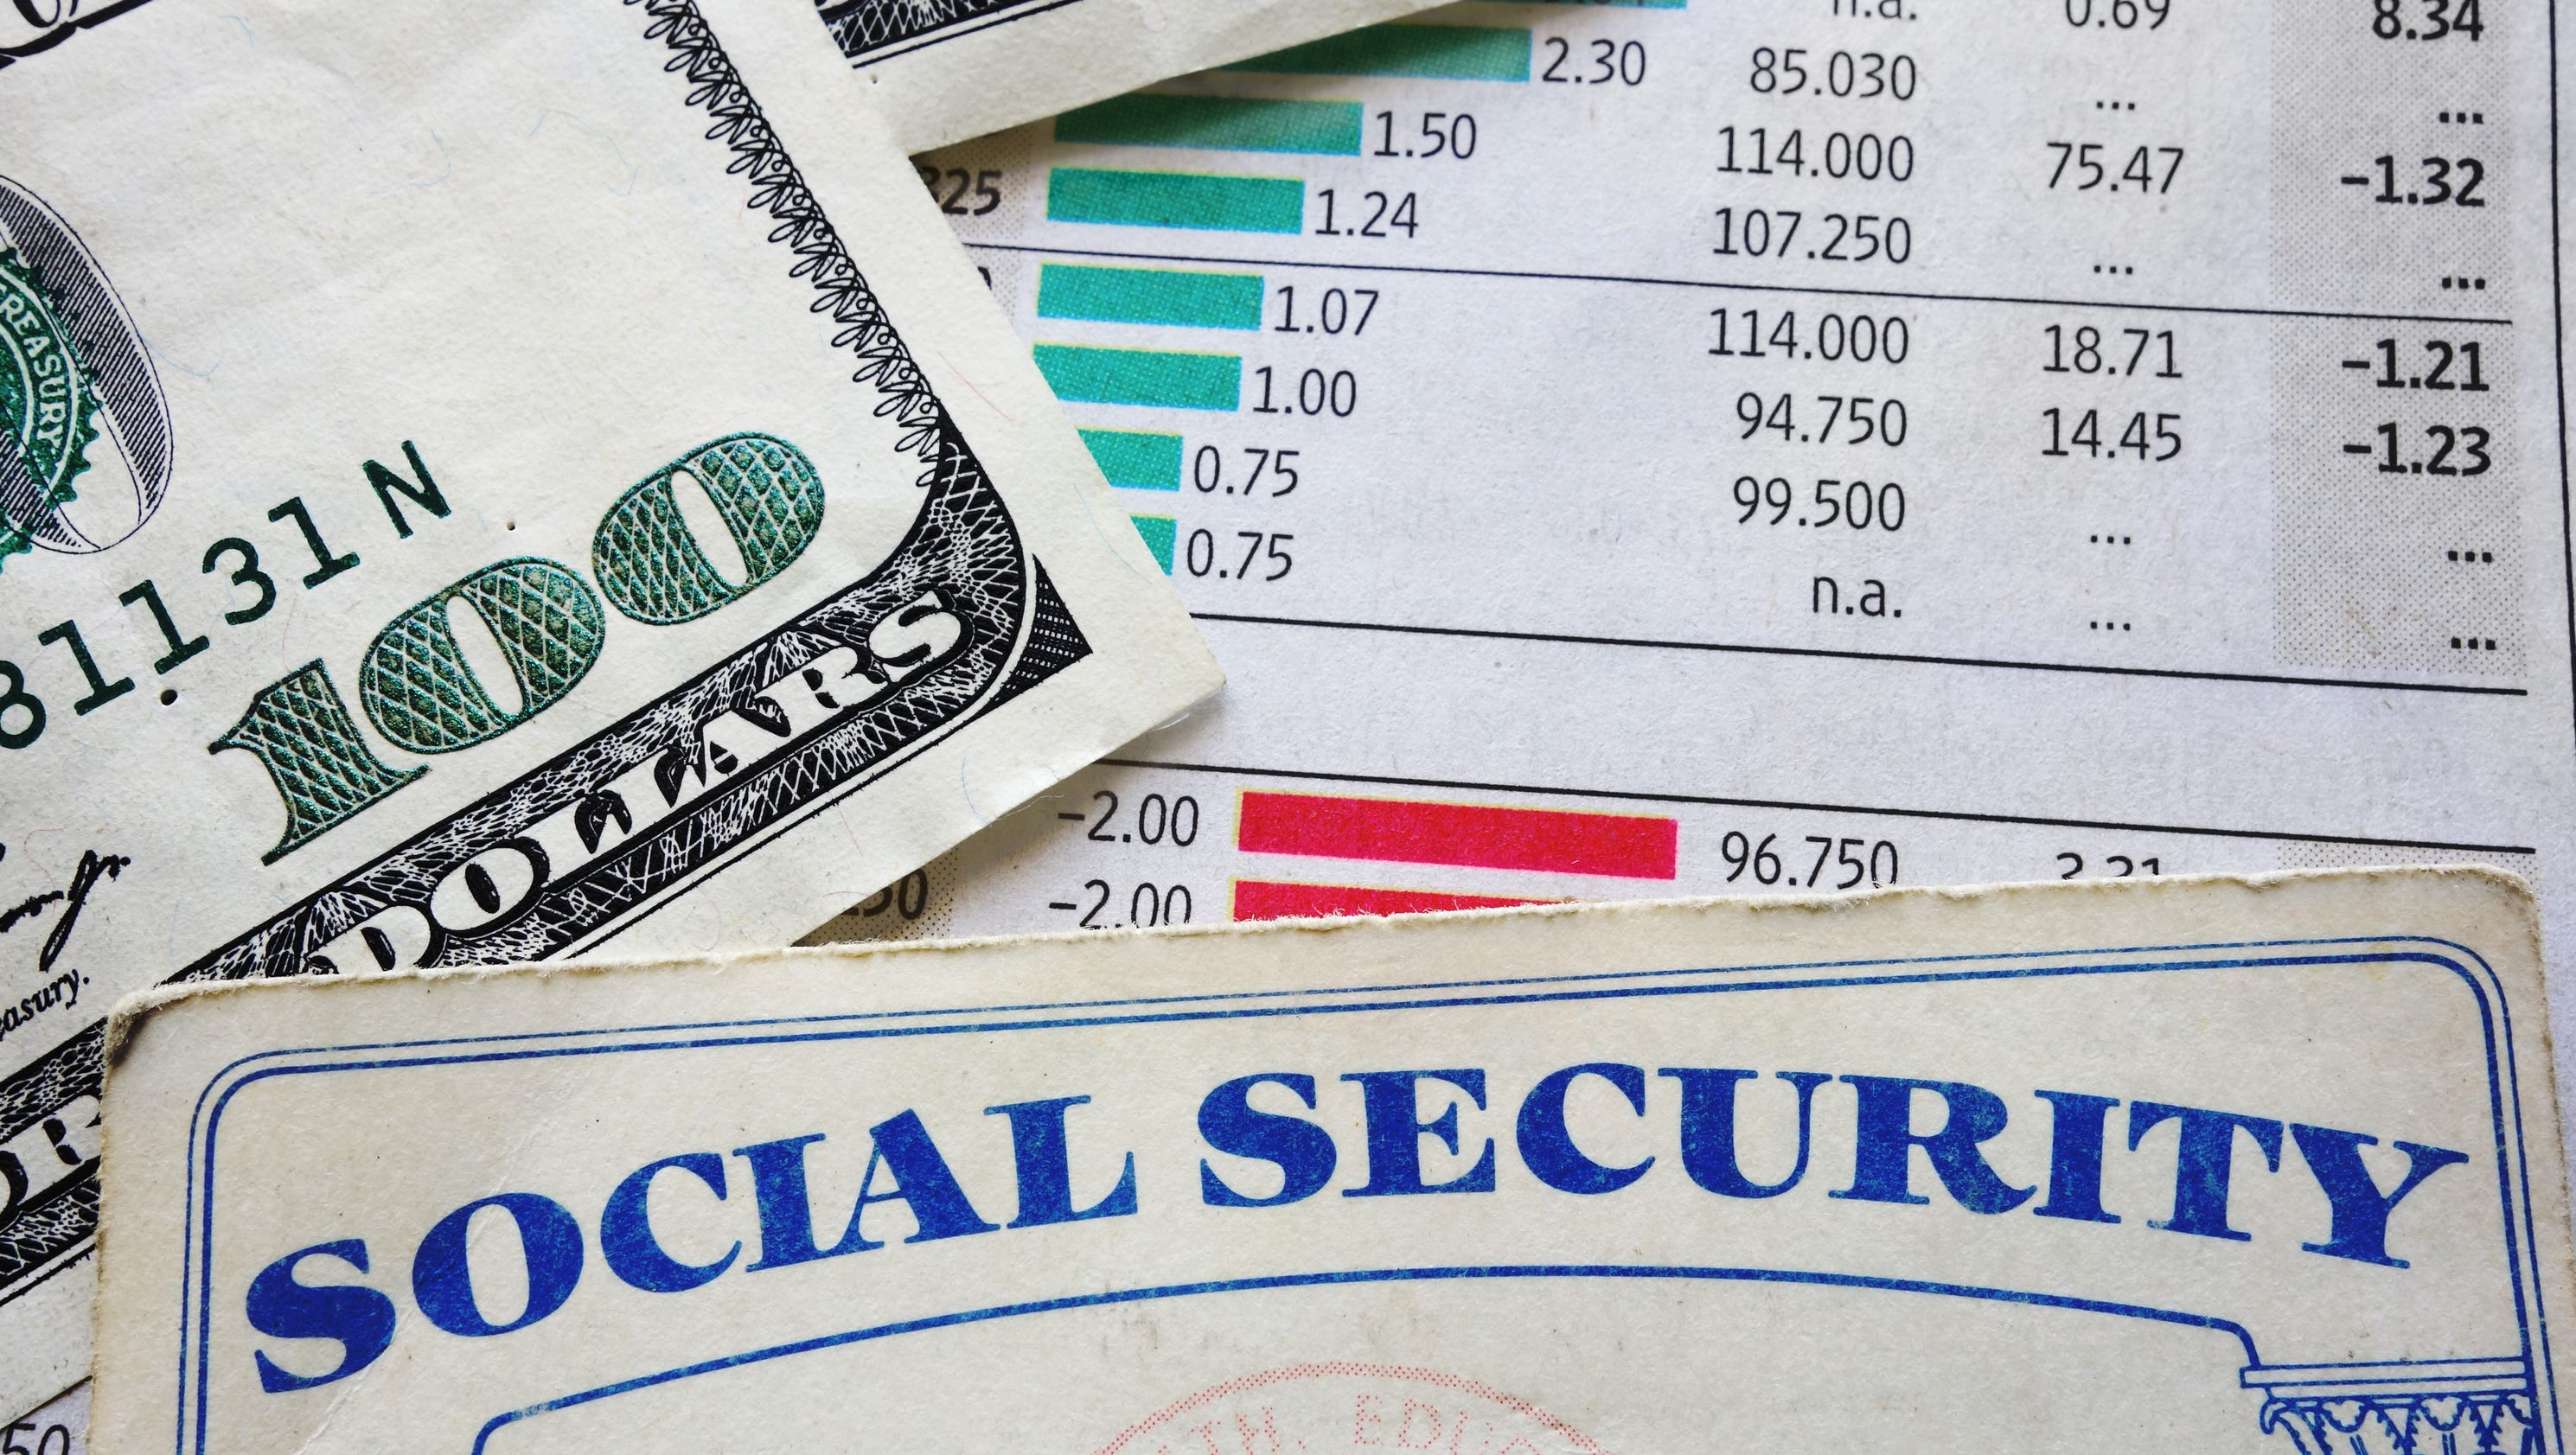 benefits and drawbacks of the american social security program Understanding the program's finer points might help increase your retirement income social security benefits can make a big difference in your retirement income balance transfer pros and cons credit card fraud protection manage your credit best offers.